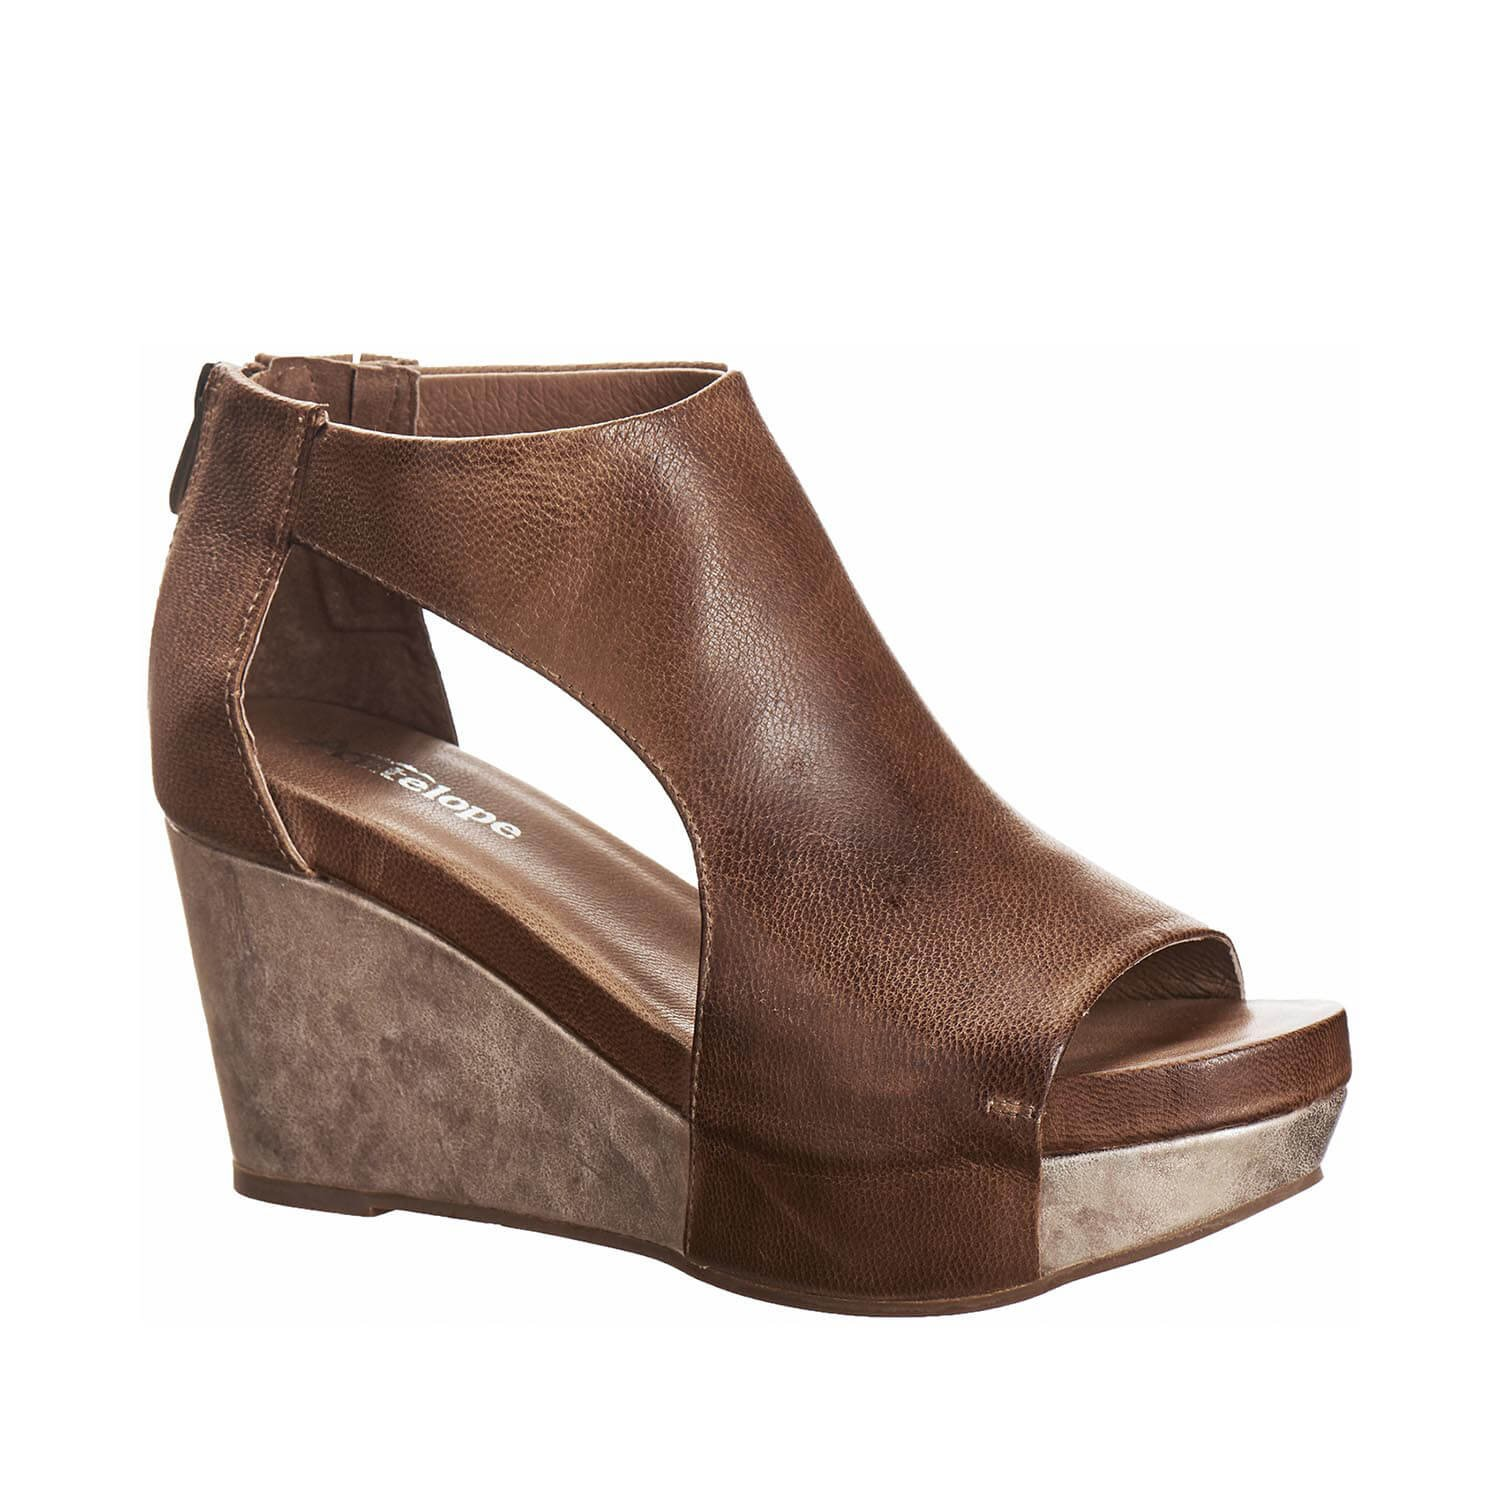 Antelope Women's 942 Taupe Leather Open View Sandals 37